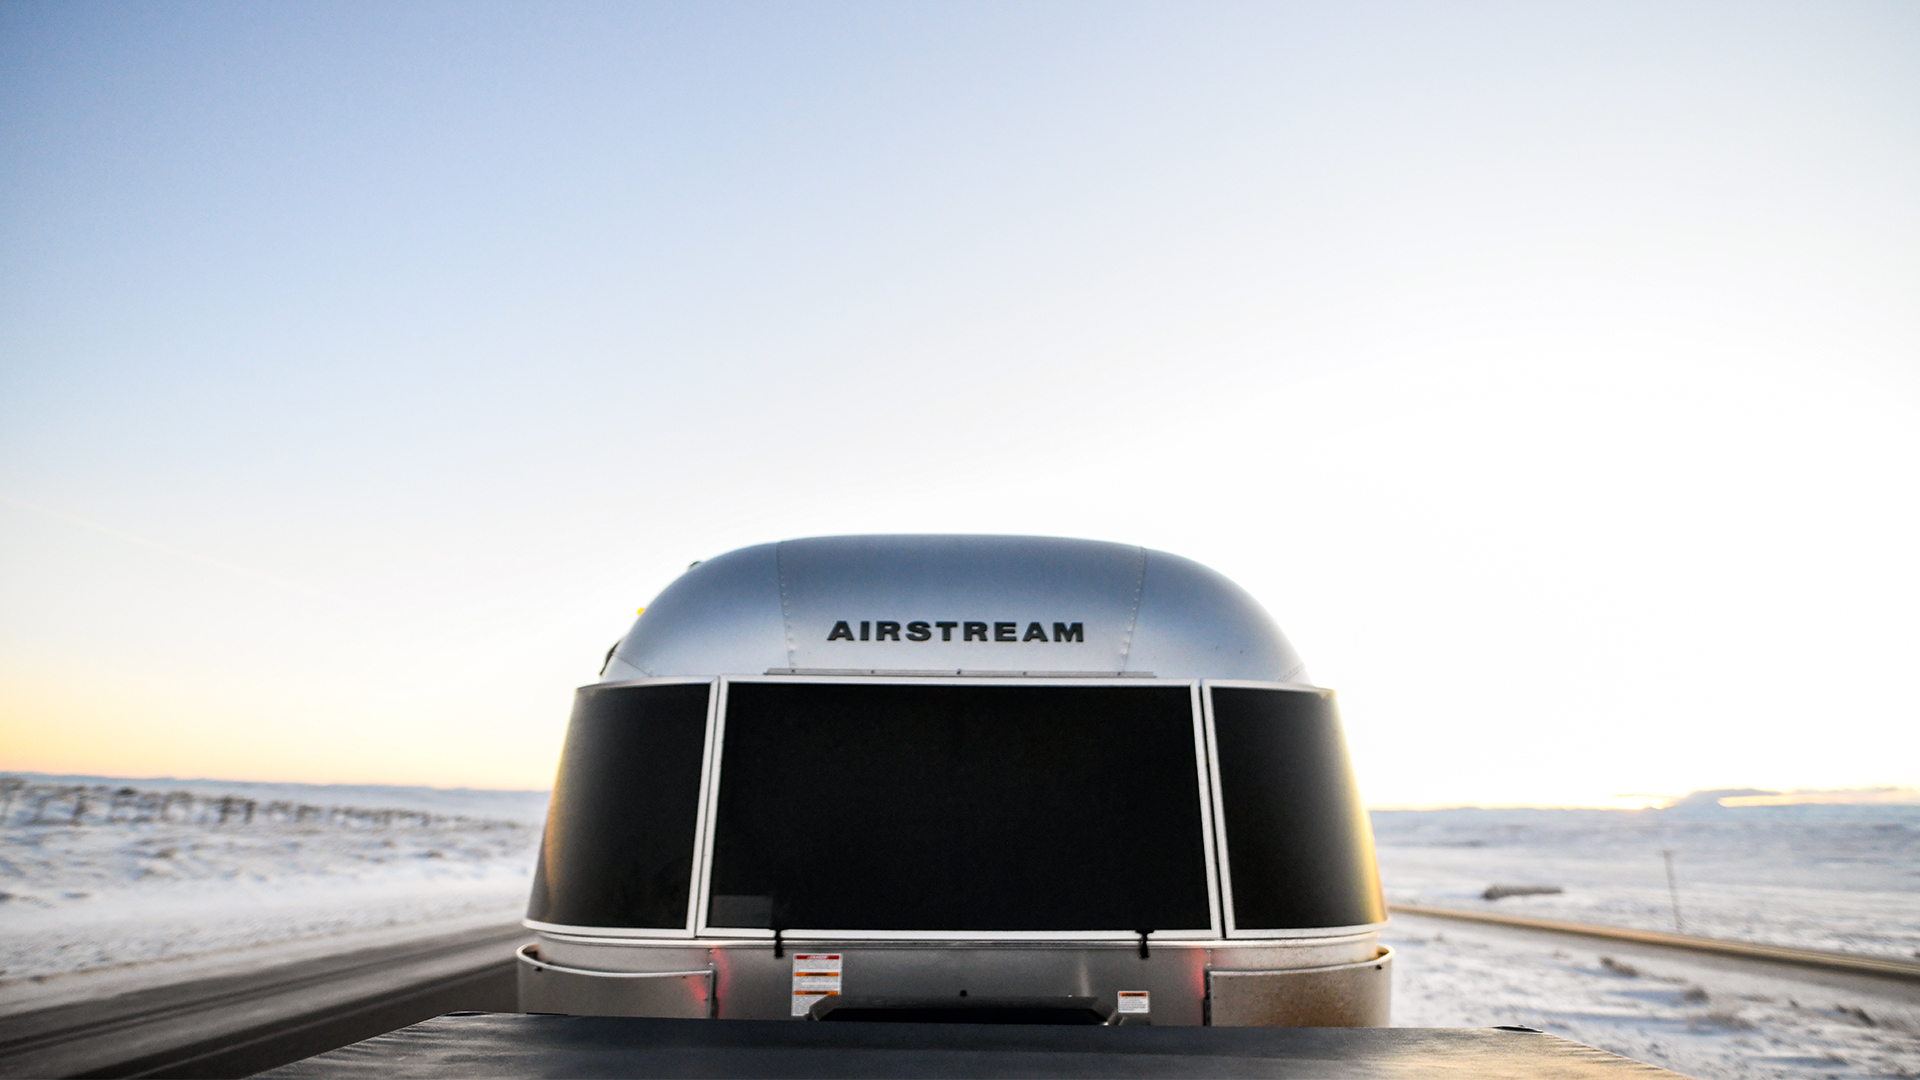 Airstream-Travel-Trailer-Towed-in-Winter